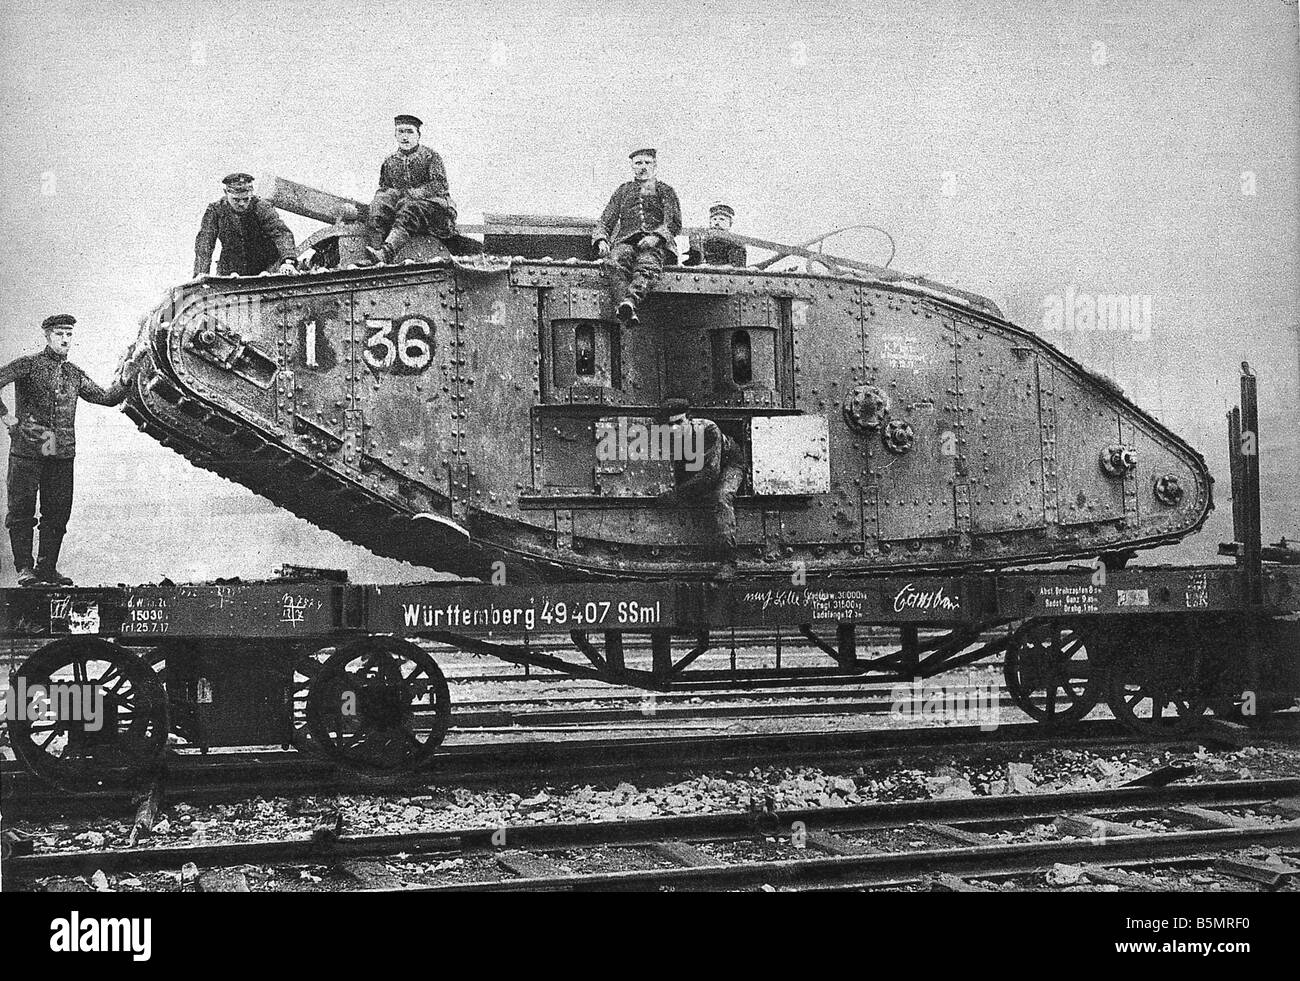 9 1917 11 20 A2 27 E WW1 Transportation of capt Eng tank World War 1 1914 18 France Battle of Cambrai 20th 29th - Stock Image